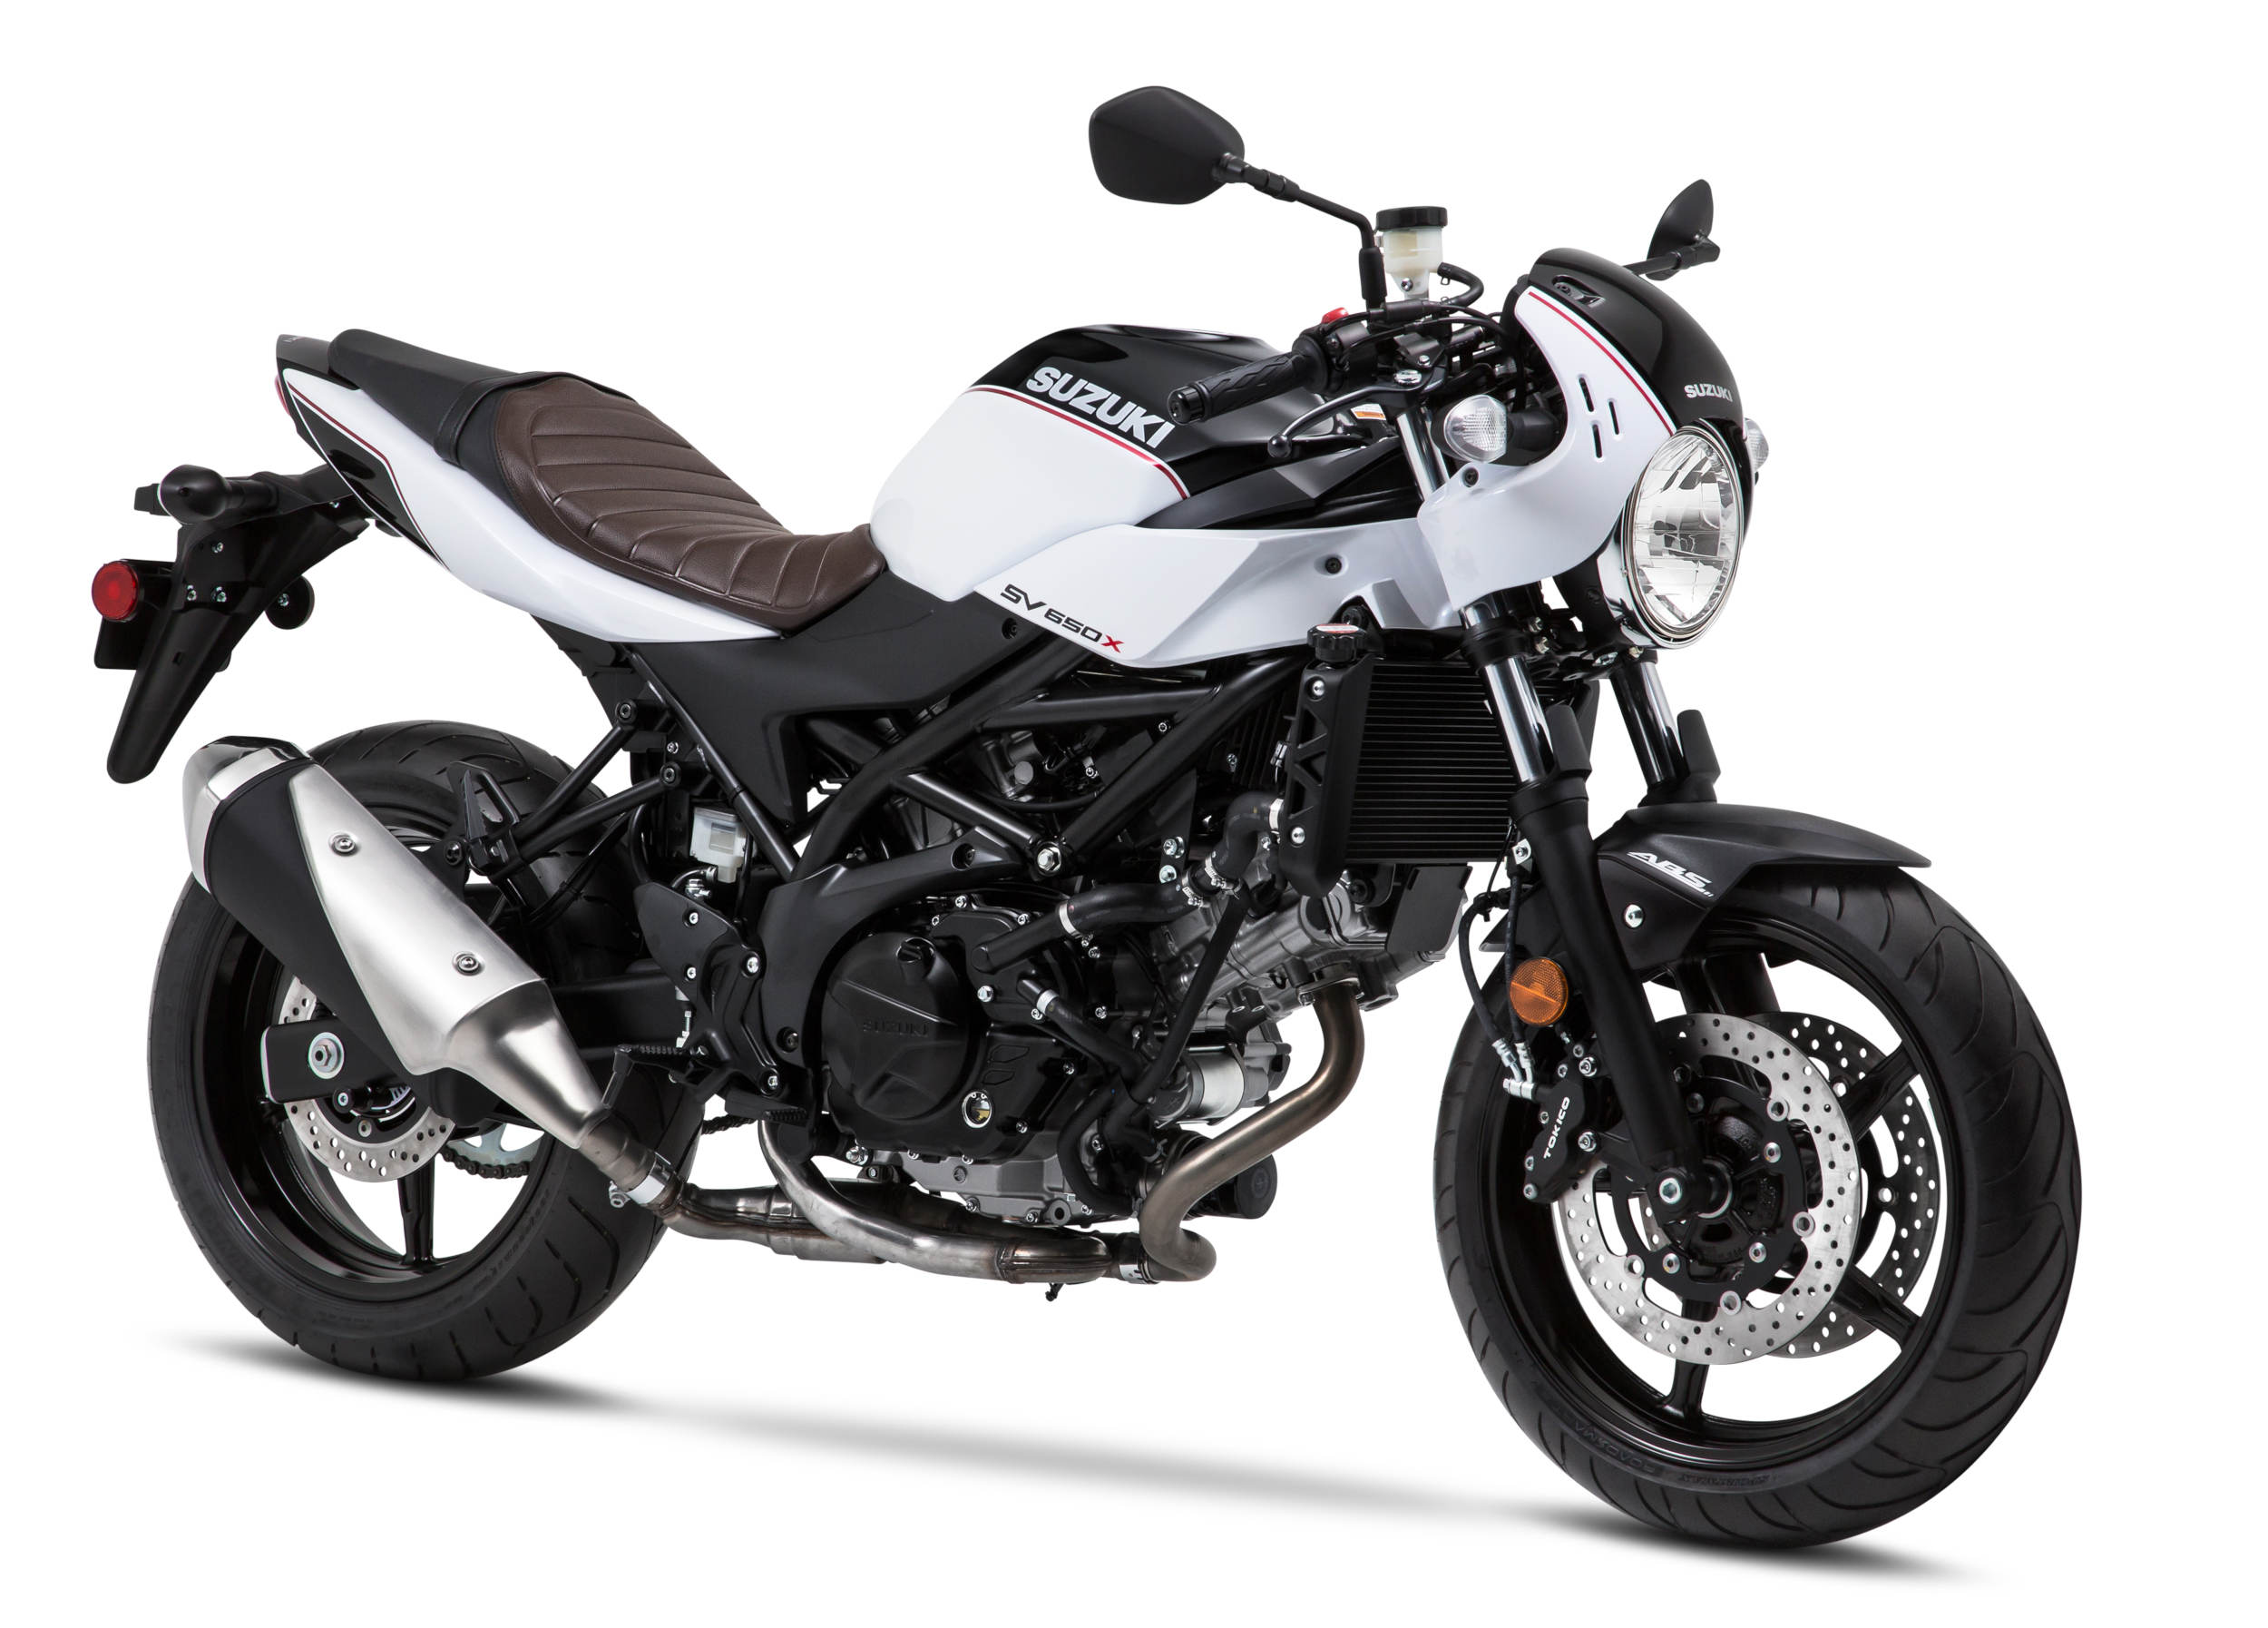 2019 Suzuki Street Line Up Includes Sv650x Caf Racer And Other 2008 Burgman 400 Problems Model Revisions Updates